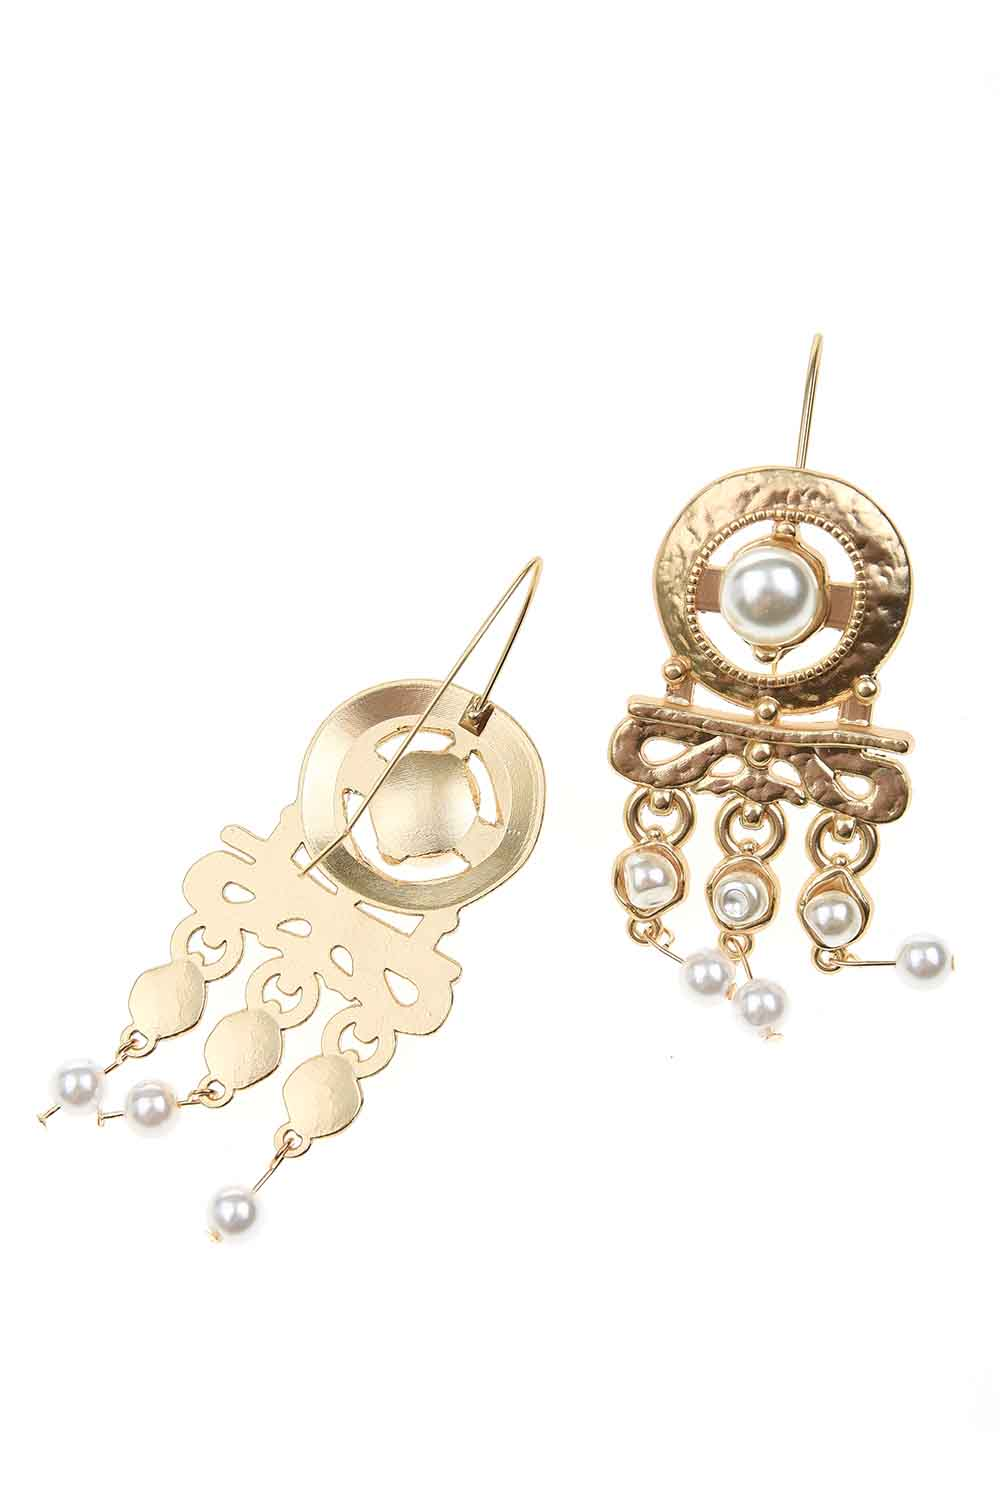 MIZALLE Pearl Looking Dangling Earrings (St) (1)